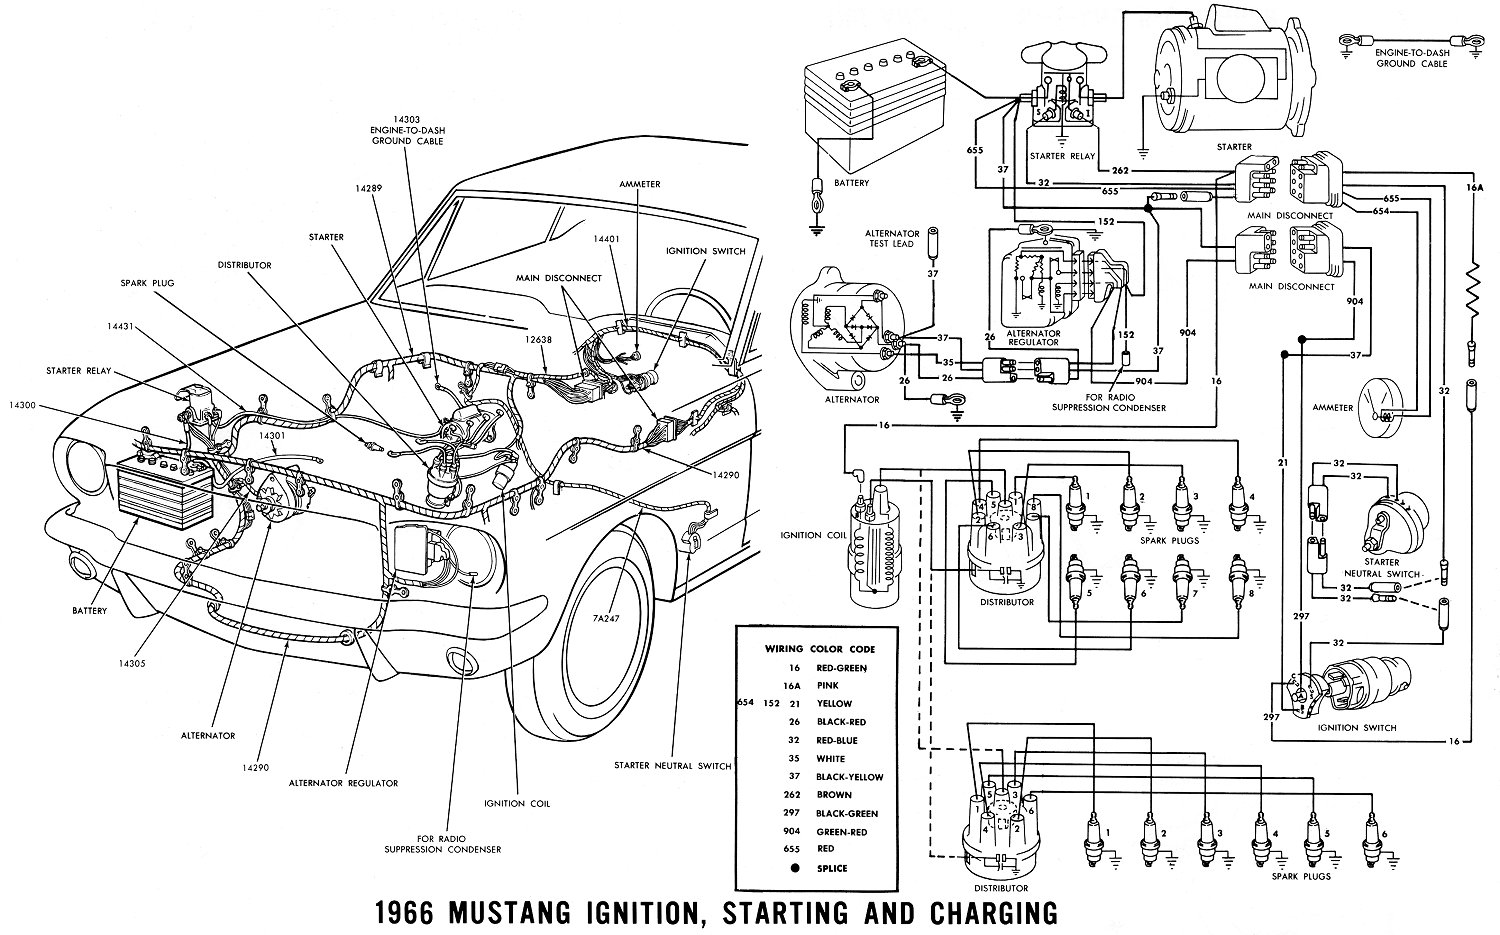 1966 Mustang Ignition Wiring Diagram on mini cooper underneath diagram